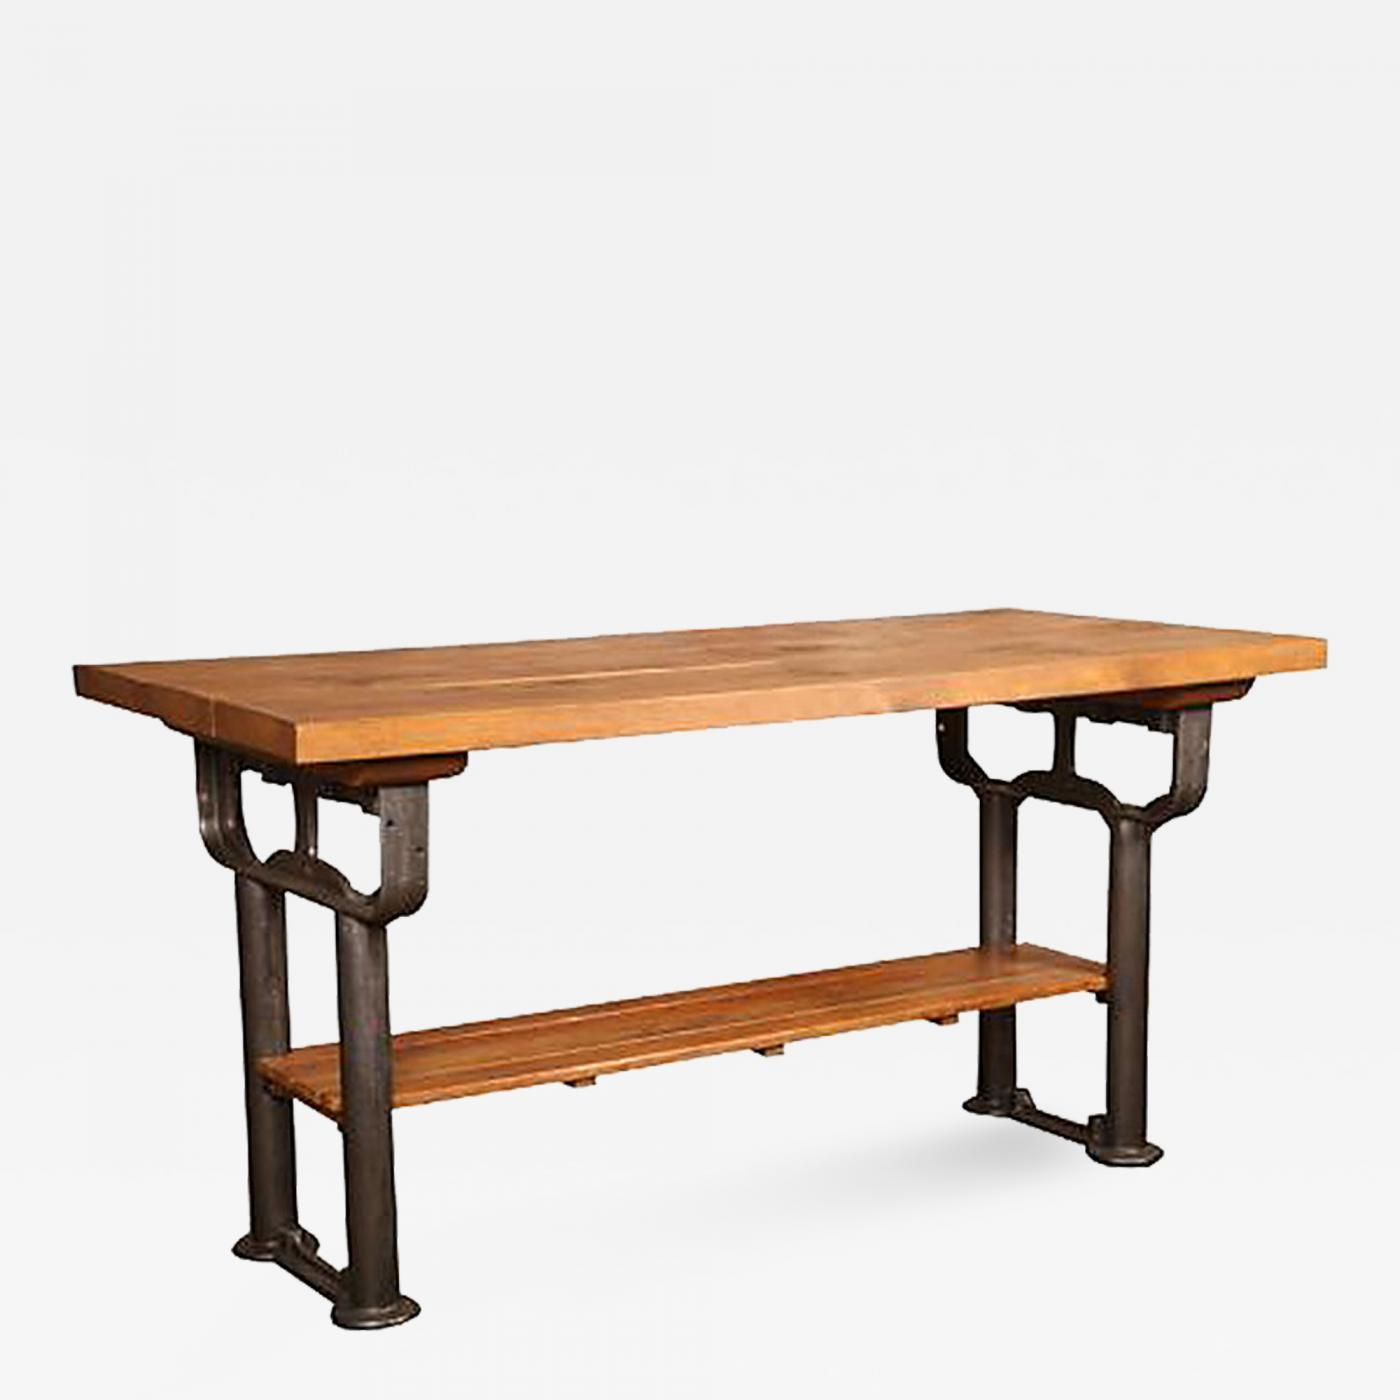 Delicieux Listings / Furniture / Tables / Work Tables